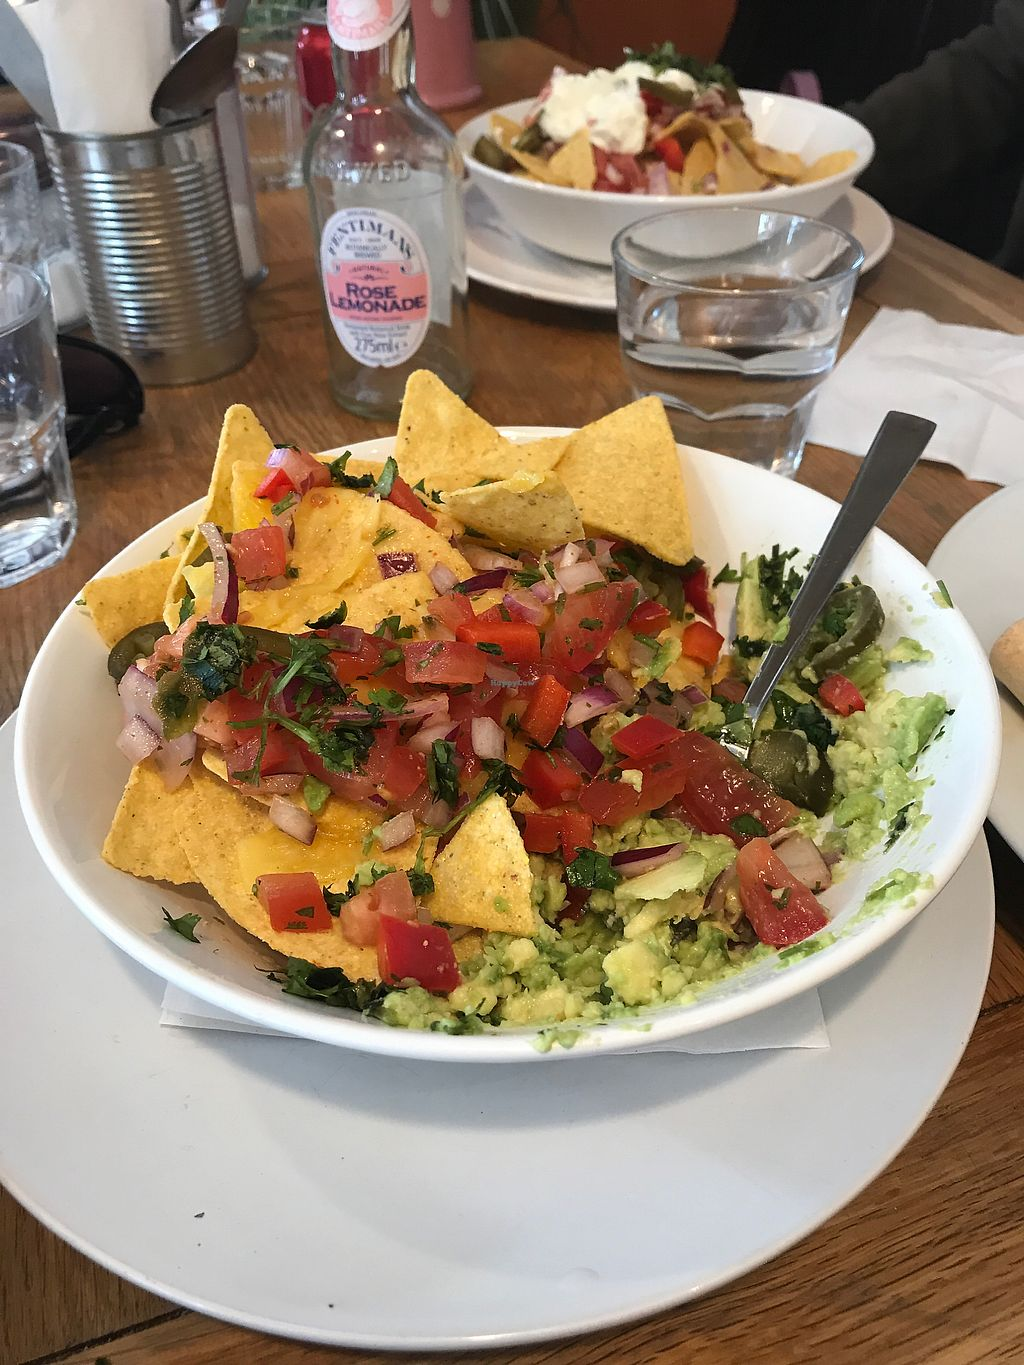 """Photo of The Zoo  by <a href=""""/members/profile/Melissaj1990"""">Melissaj1990</a> <br/>Vegan nachos  <br/> September 19, 2017  - <a href='/contact/abuse/image/775/305977'>Report</a>"""